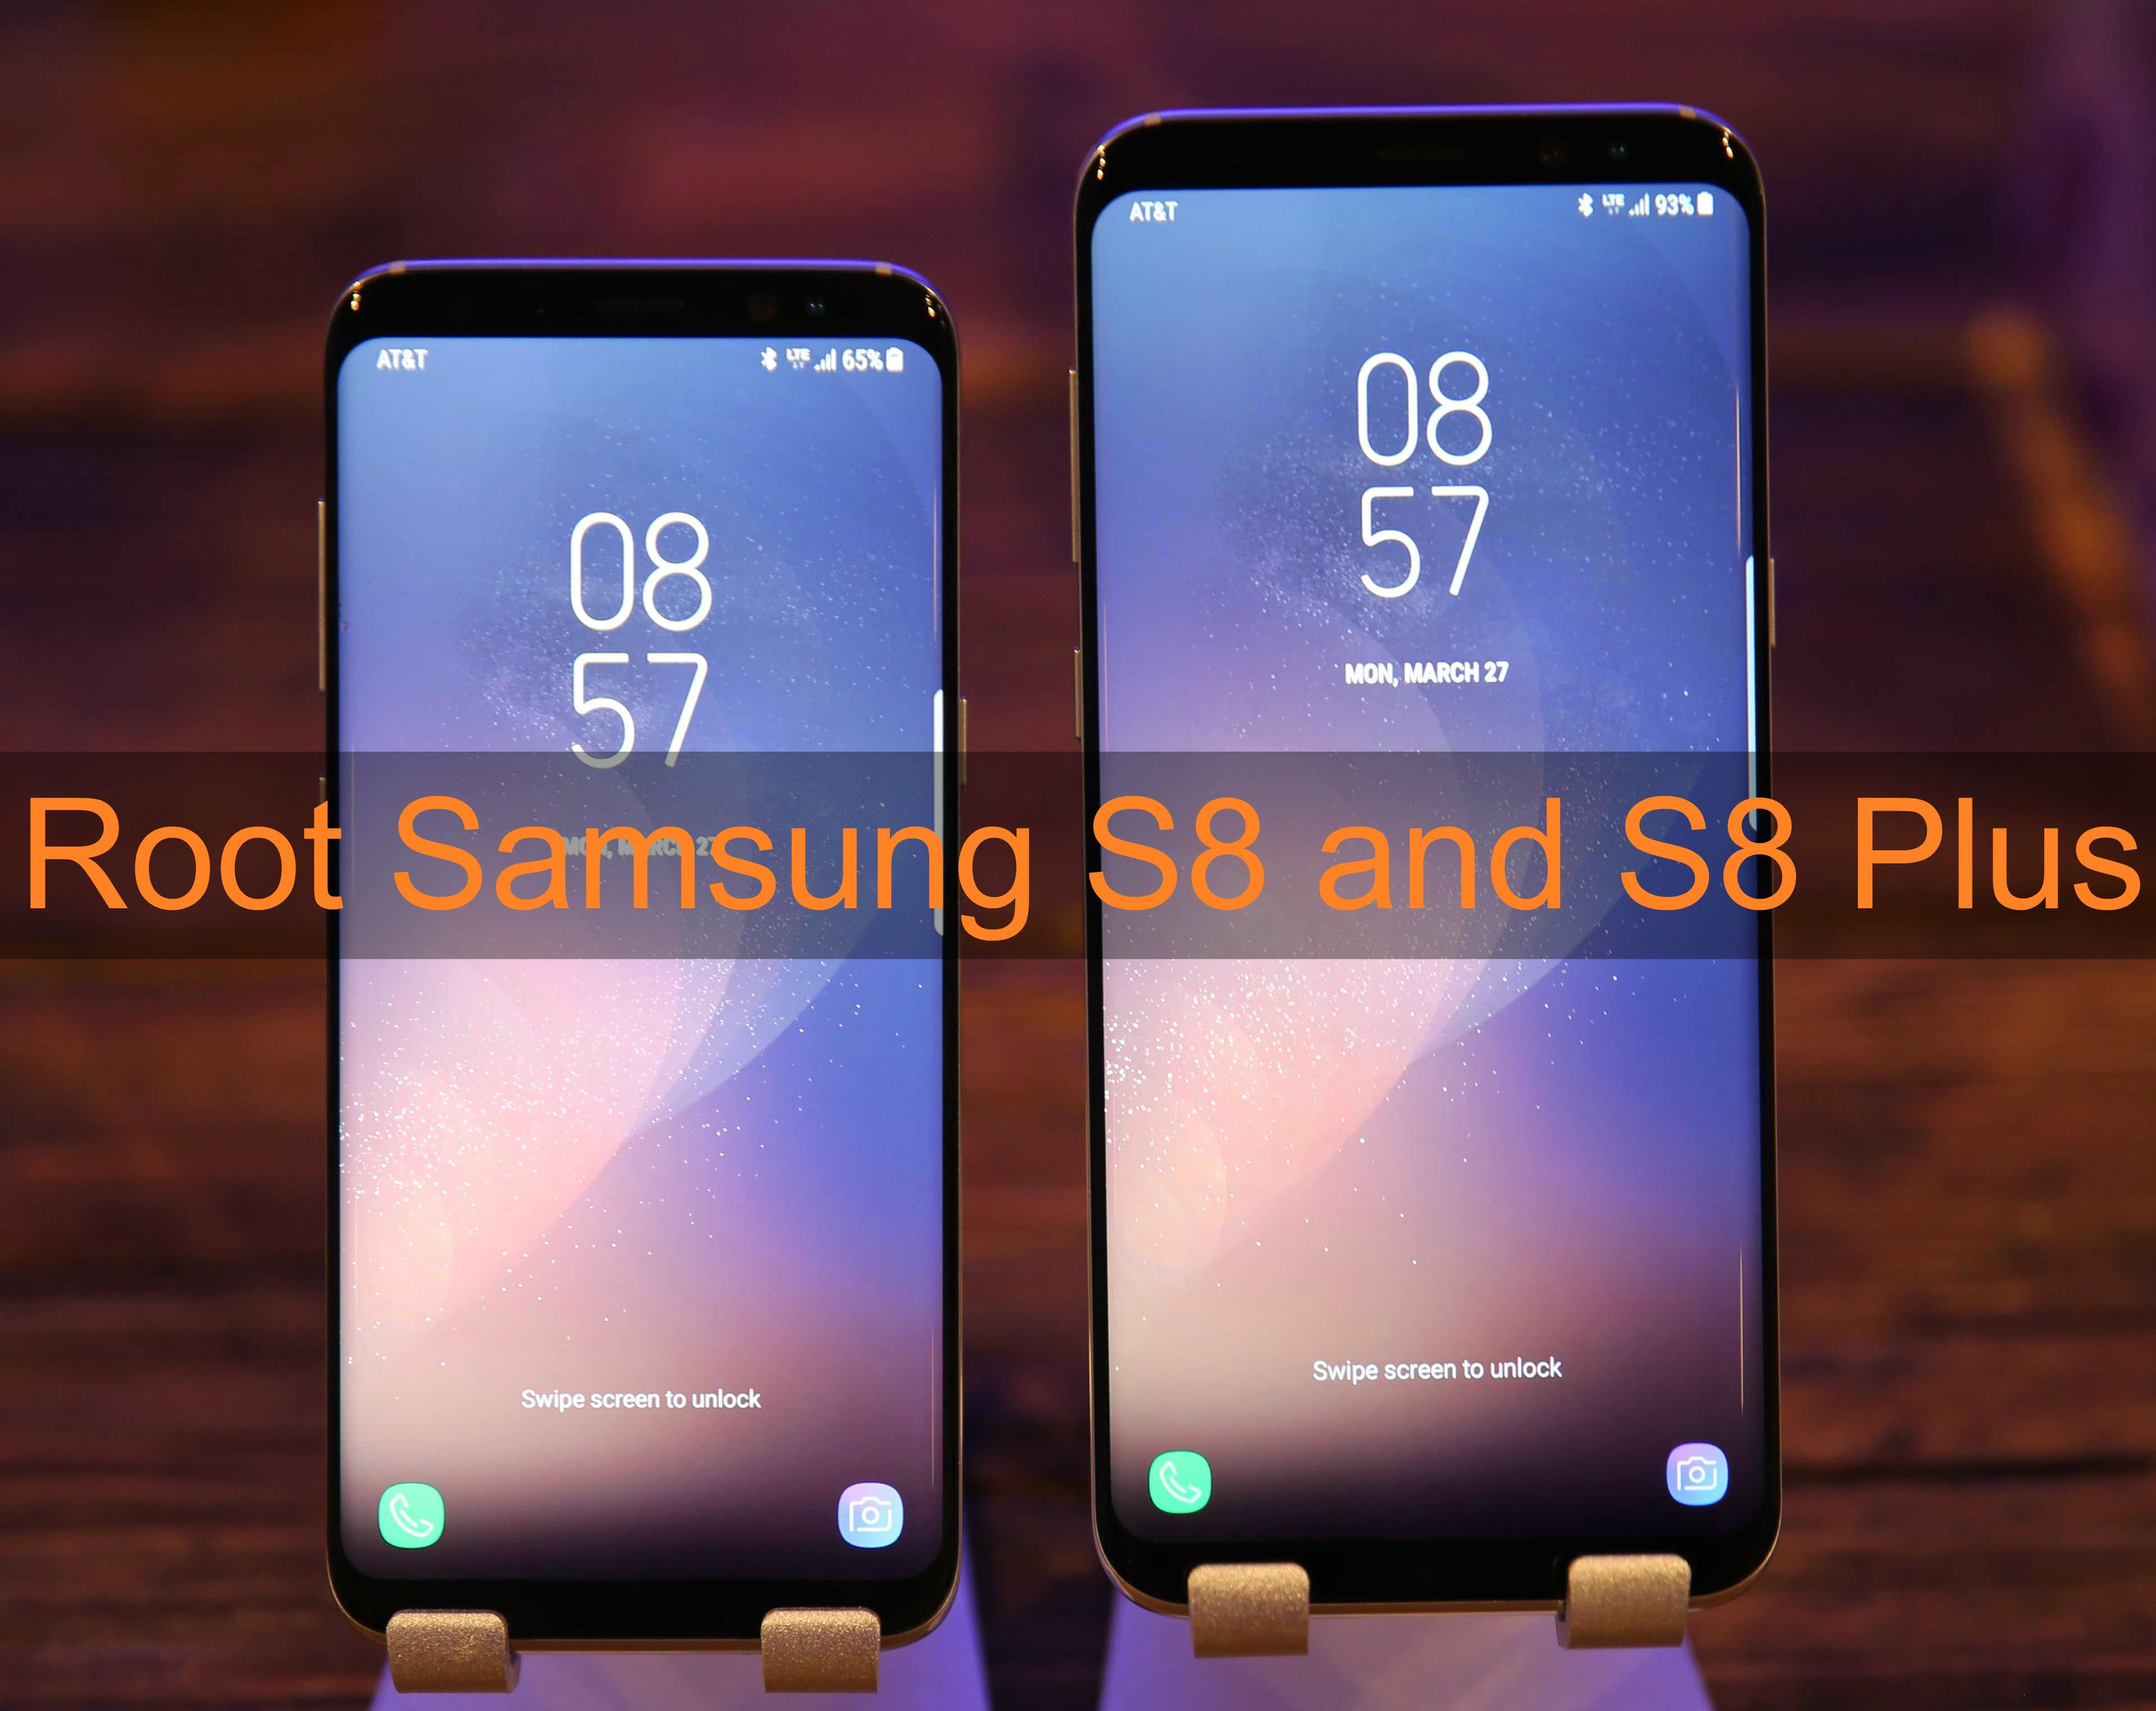 SM-G955U] How to Install TWRP and Root your Samsung S8 Plus